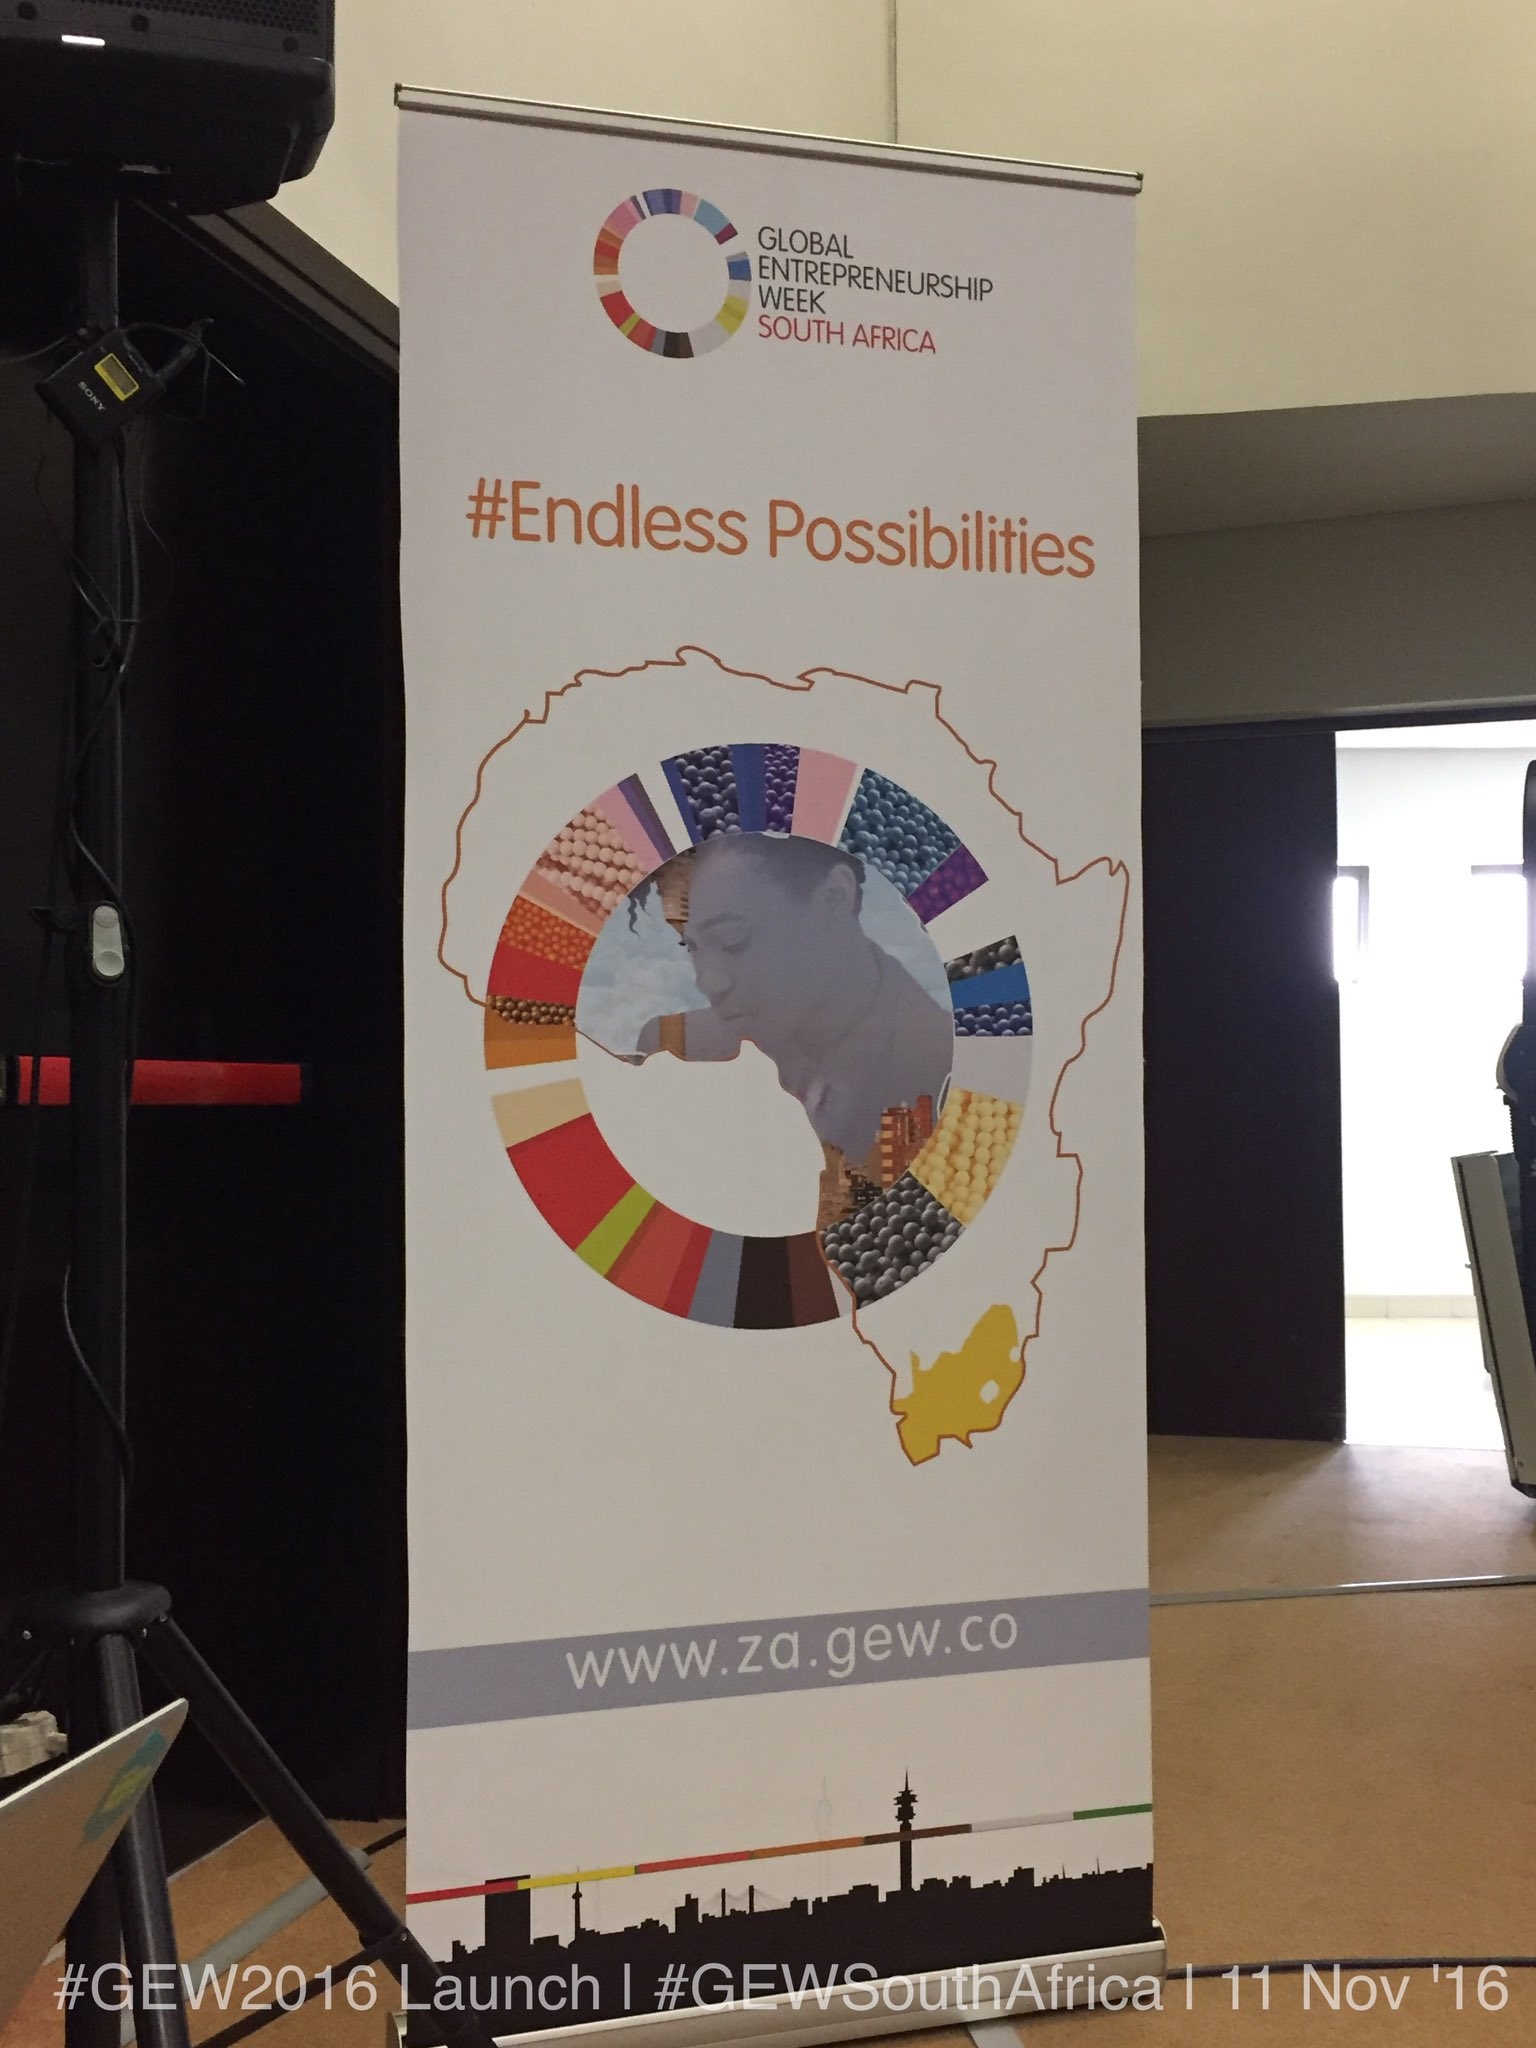 To all our partners and the #entrepreneurship community: THANK FOR YOUR UNWAVERING SUPPORT #GEW2016 Launch #GEWSouthAfrica https://t.co/3HdncM0lJz